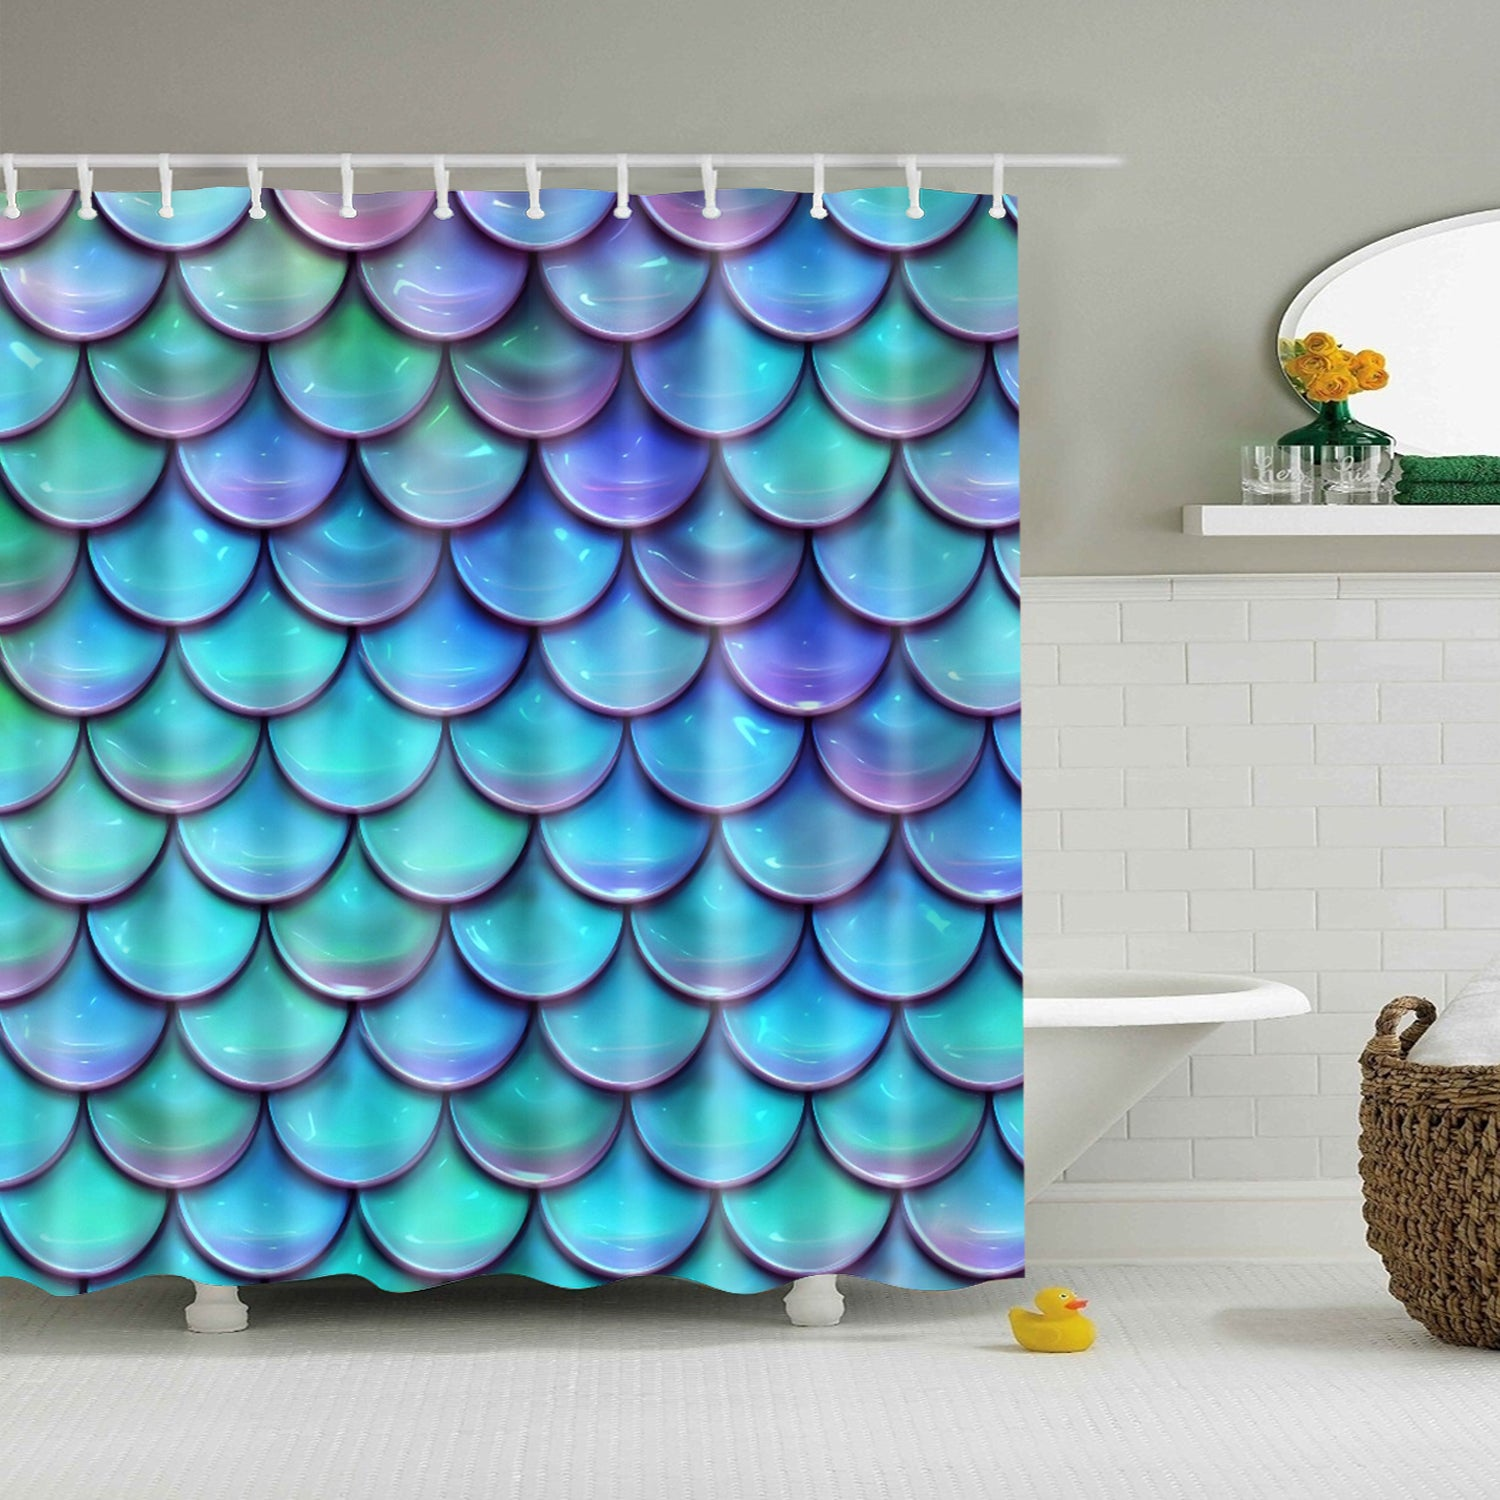 Holographic Mermaid Scales Shower Curtain